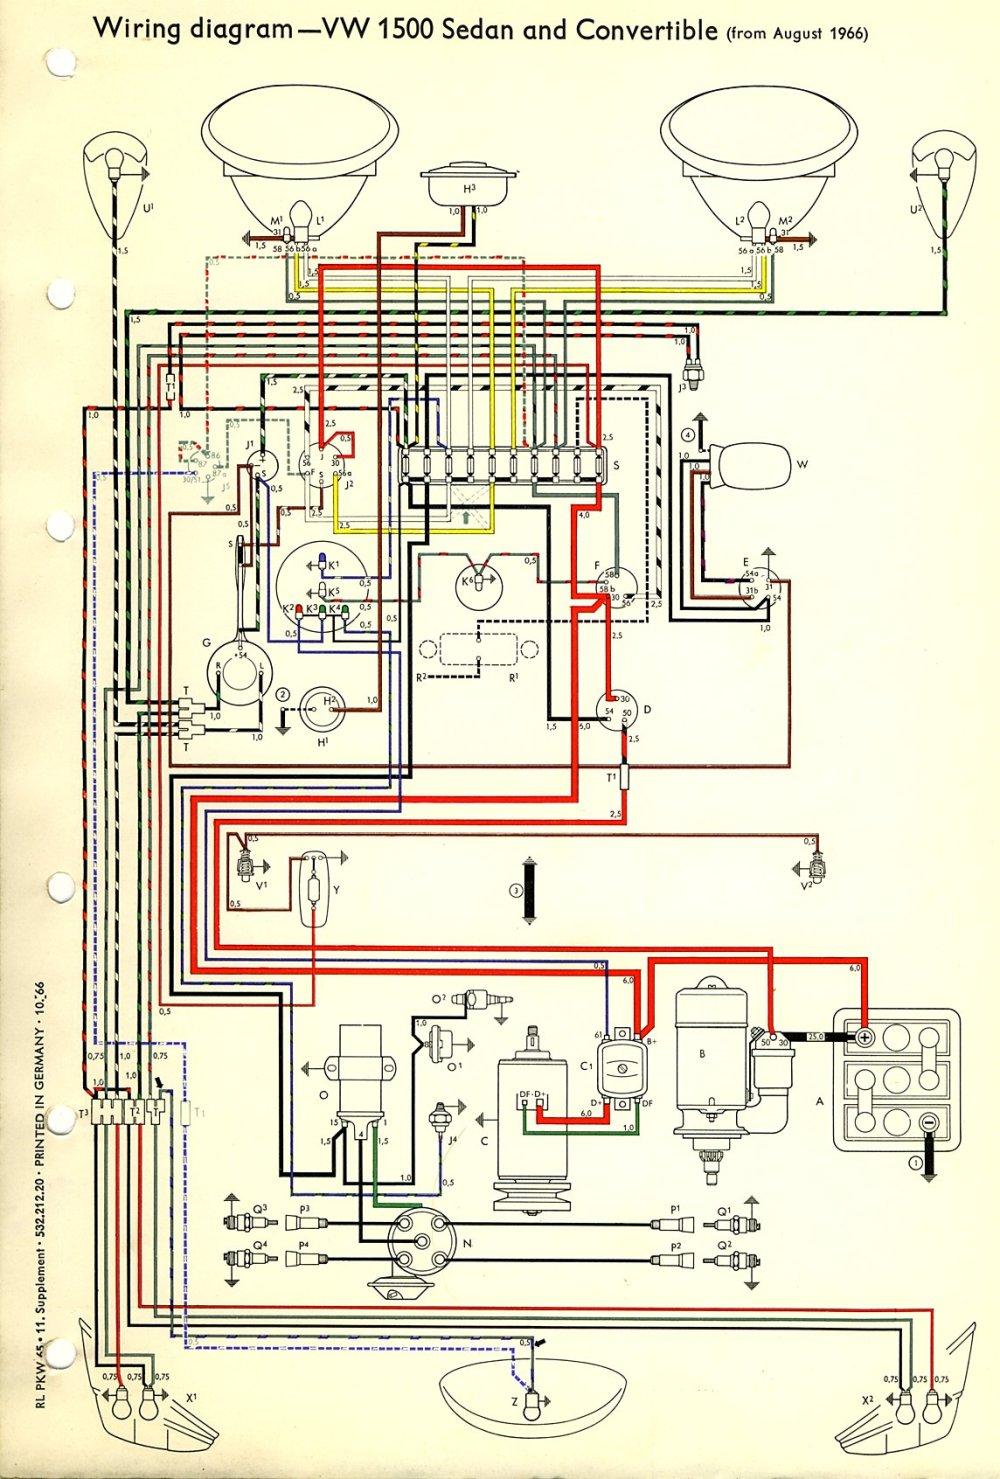 medium resolution of 1974 volkswagen beetle wiring wiring diagram expert 1974 volkswagen wiring diagram 1974 vw wiring diagram